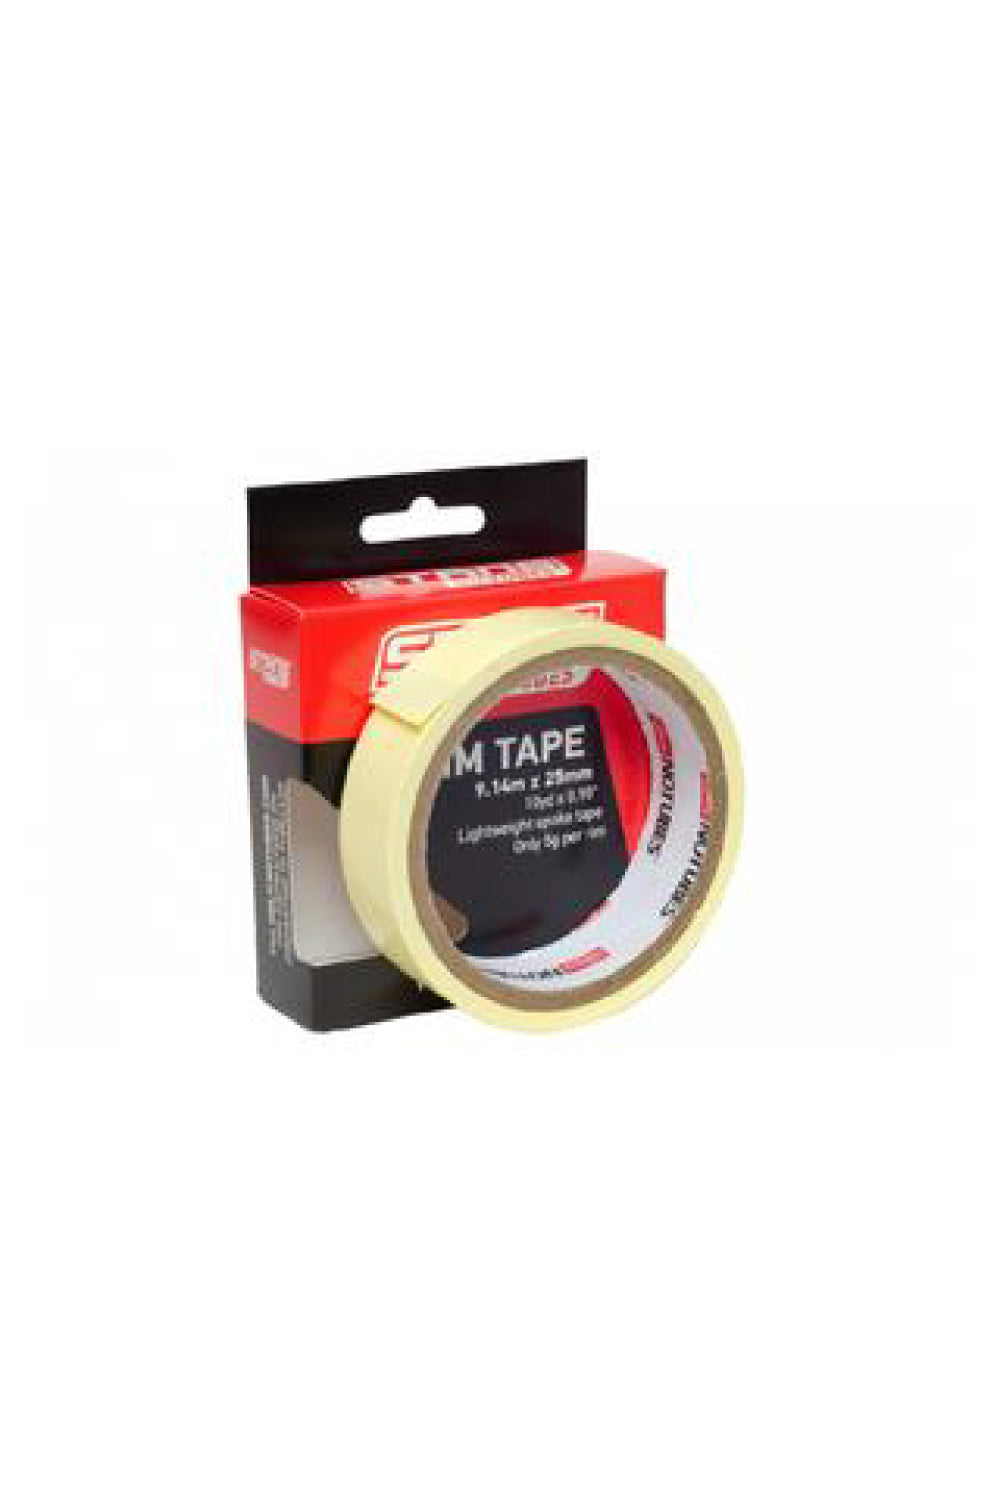 STANS NO TUBES RIM TAPE 10YARD X 21MM